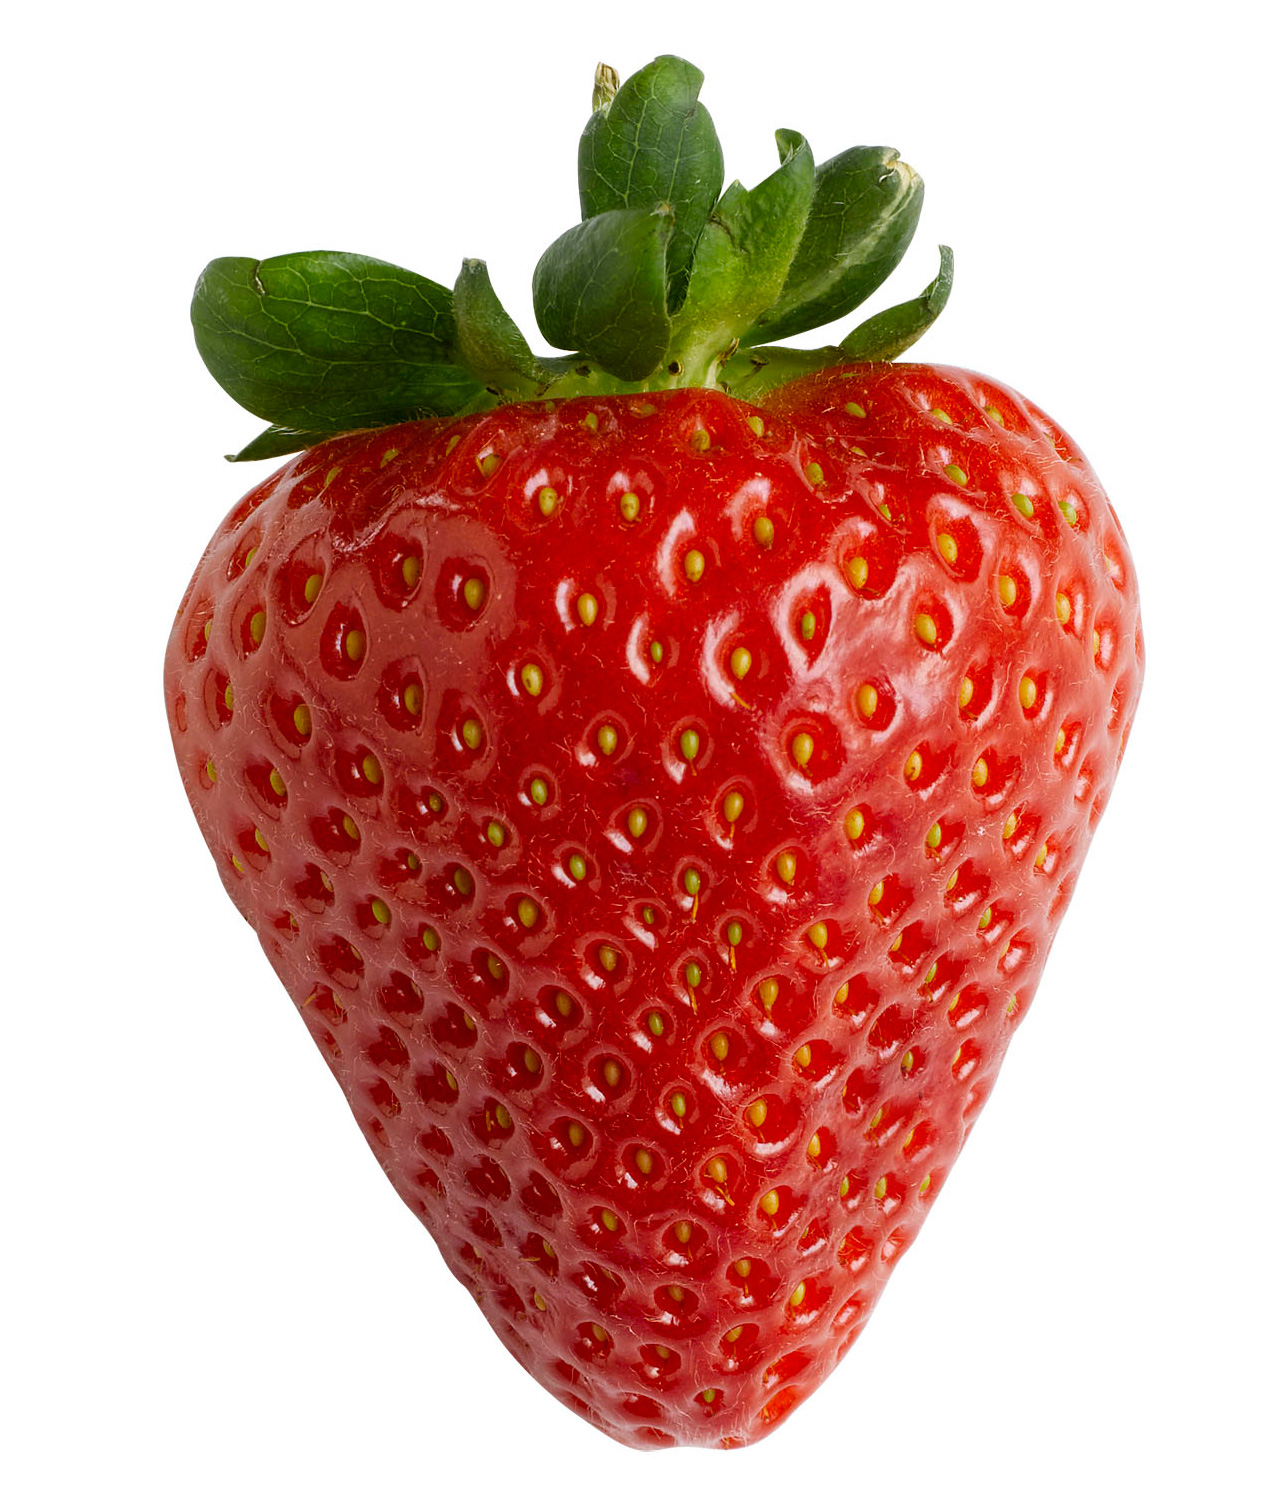 Strawberry Images Clipart Free Best image #22932